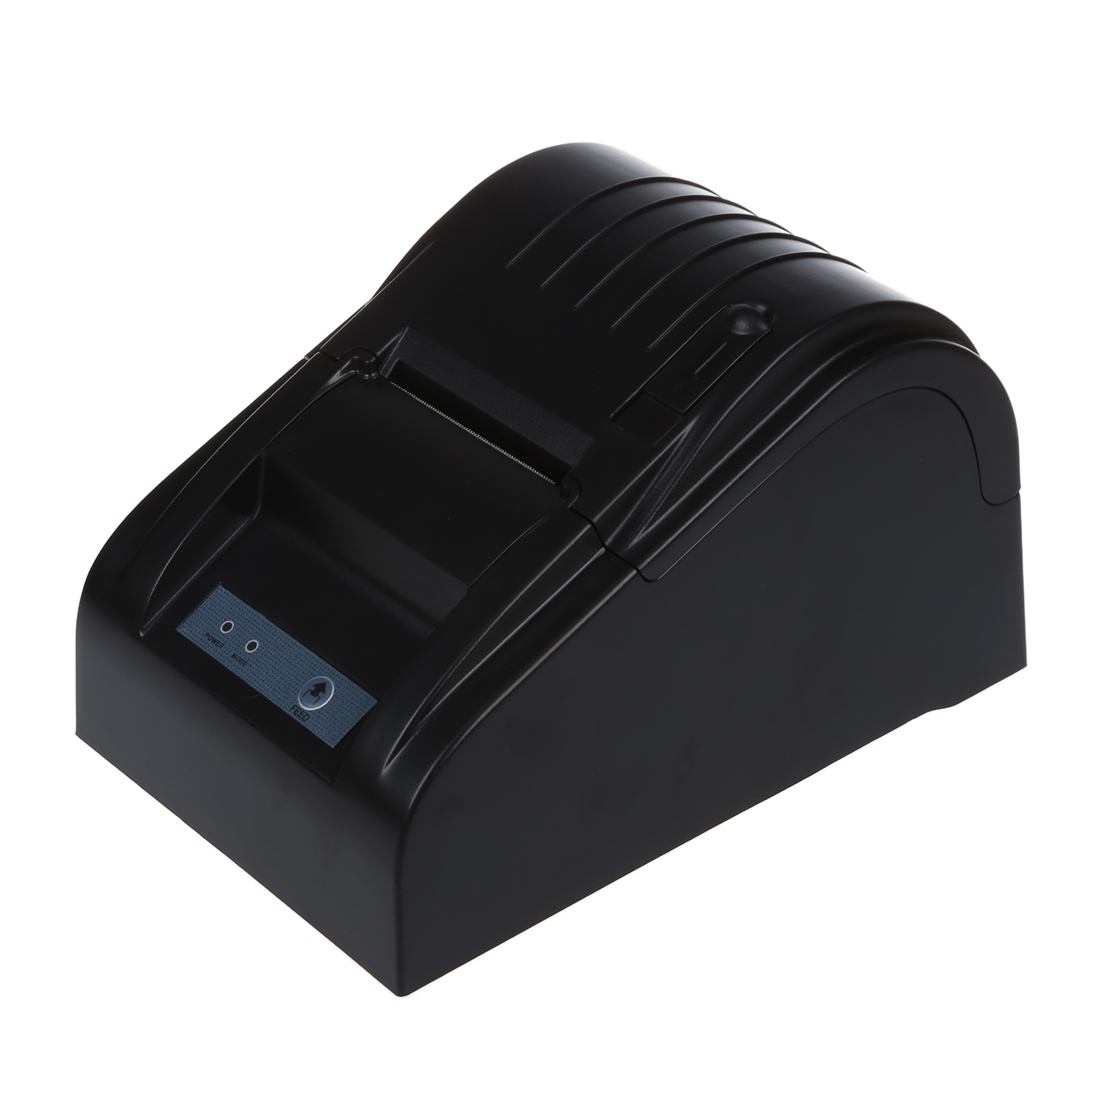 Thermal Printer for tickets and receipts (58mm, 90mm / s, Windows compatible), Black